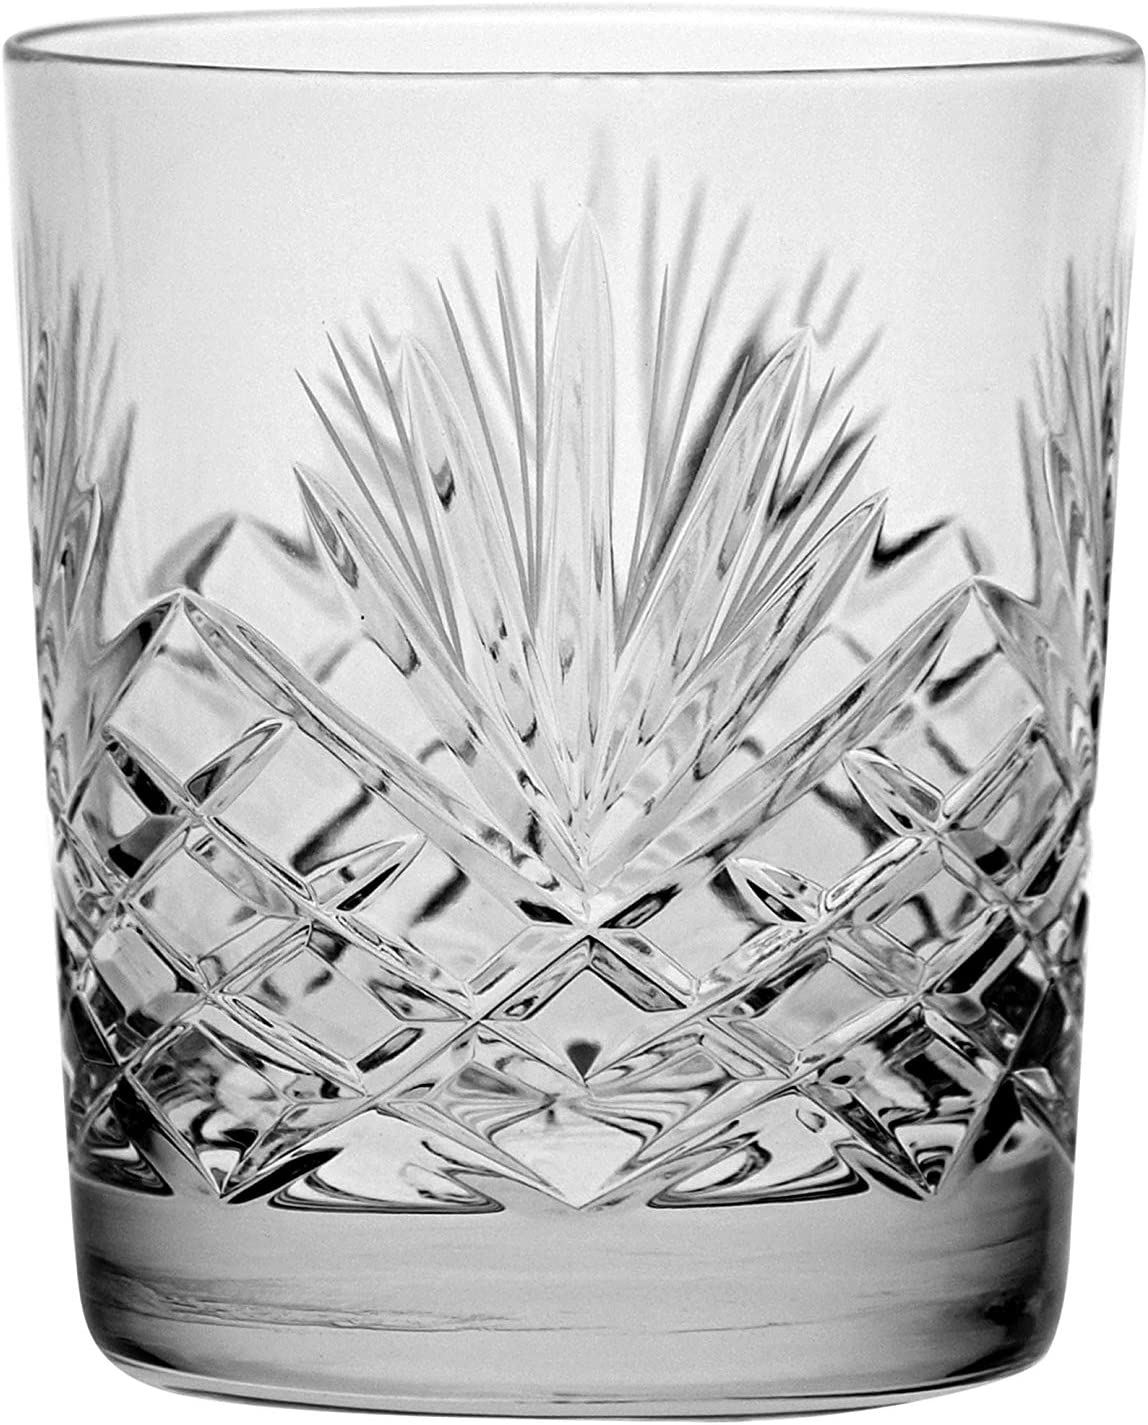 Crystal Double Old Fashioned - Set of 2021new Max 64% OFF shipping free Cut 6 Glasses DOF t Hand